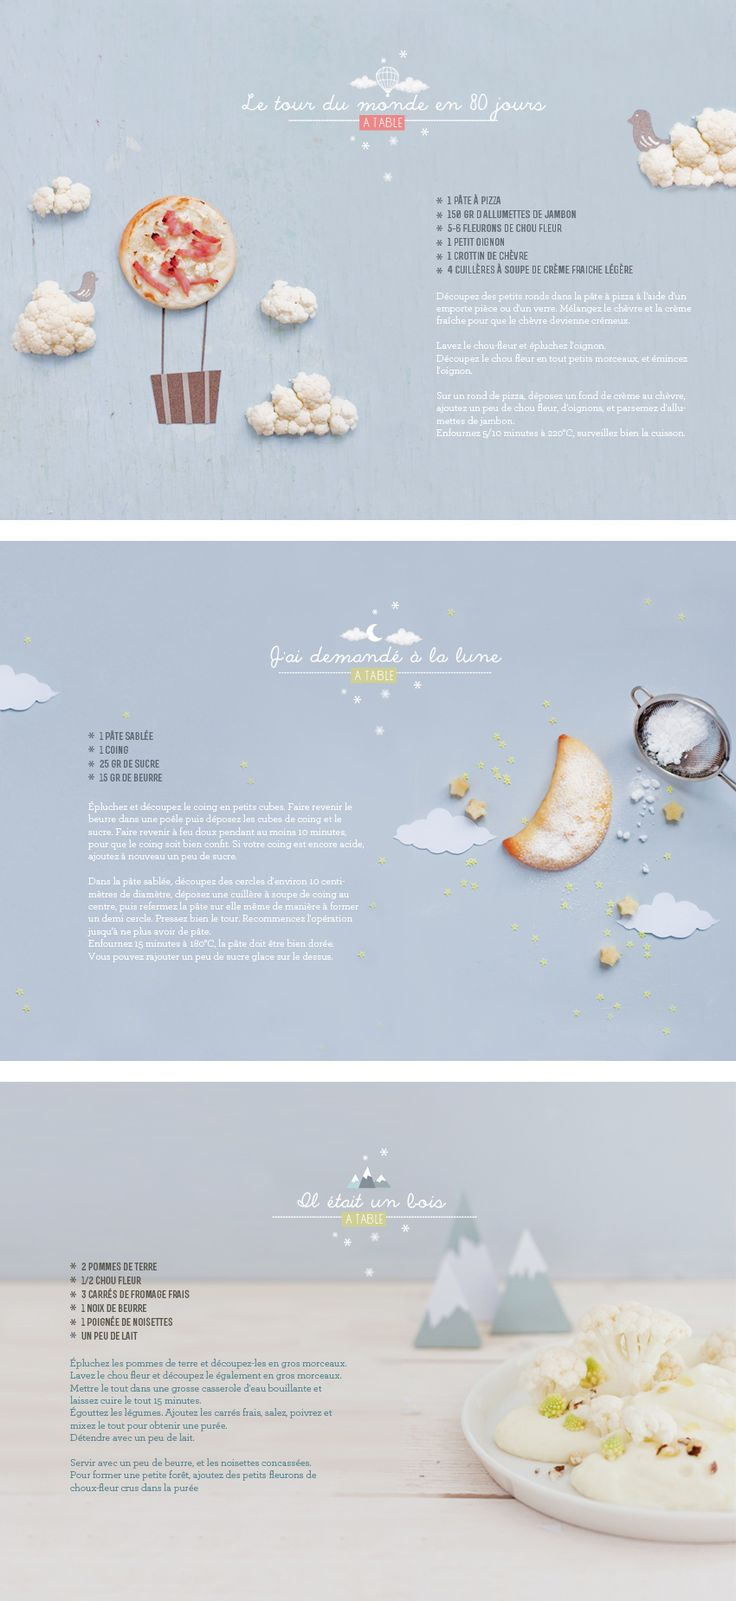 What i like most about these spread designs is the lack of words. The photo is…